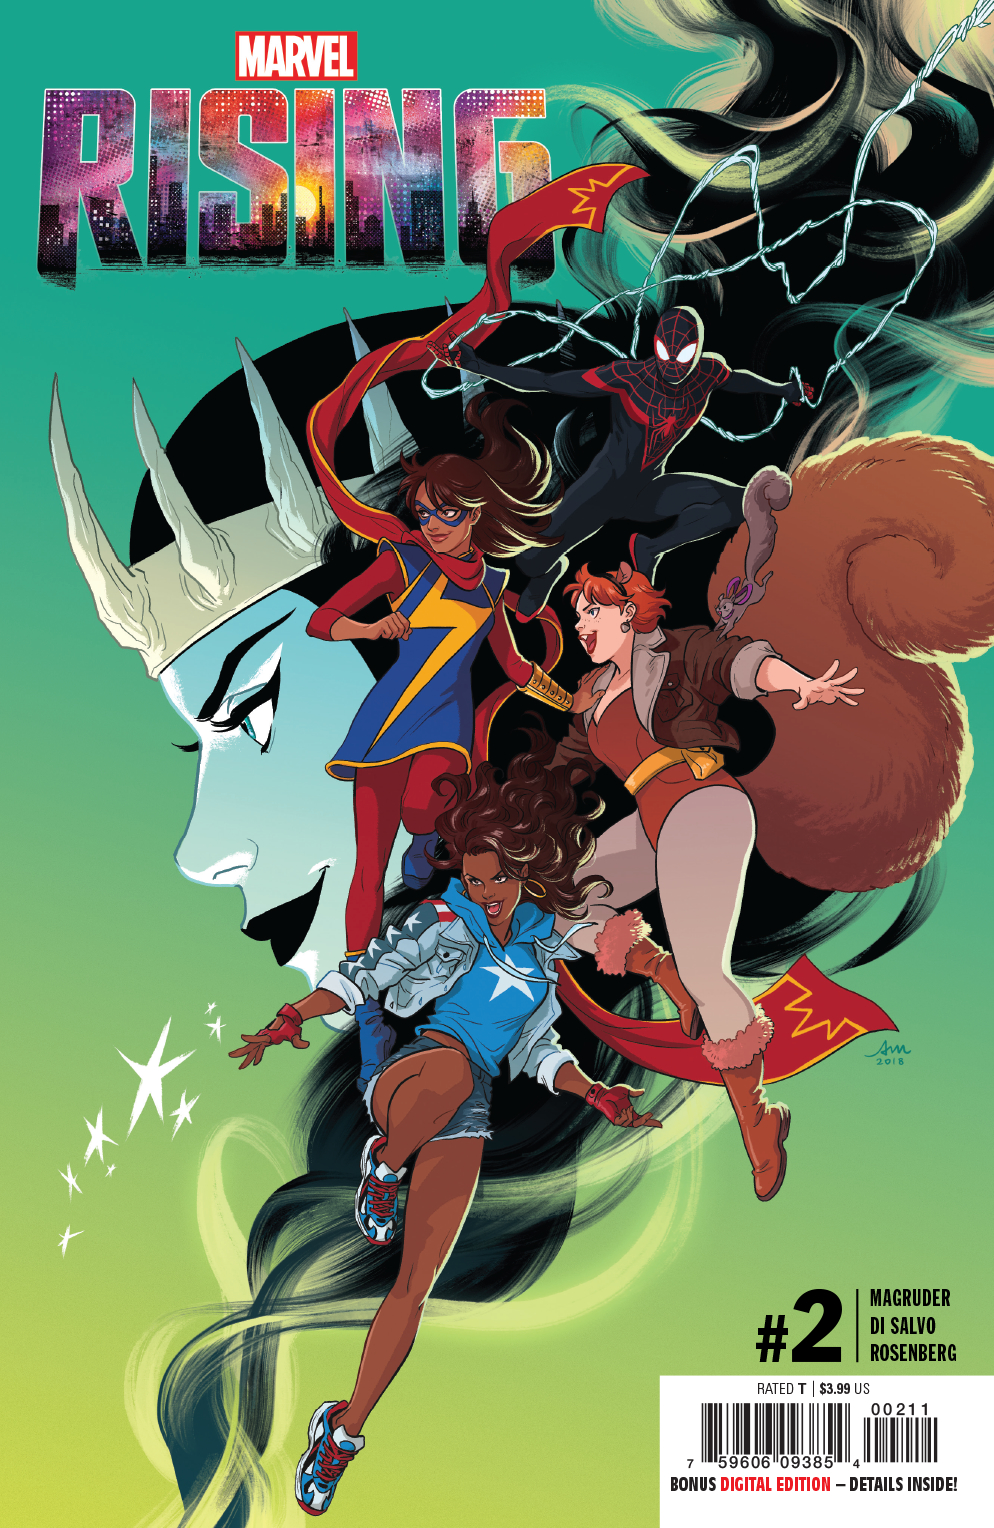 MARVEL RISING #2 (OF 5)